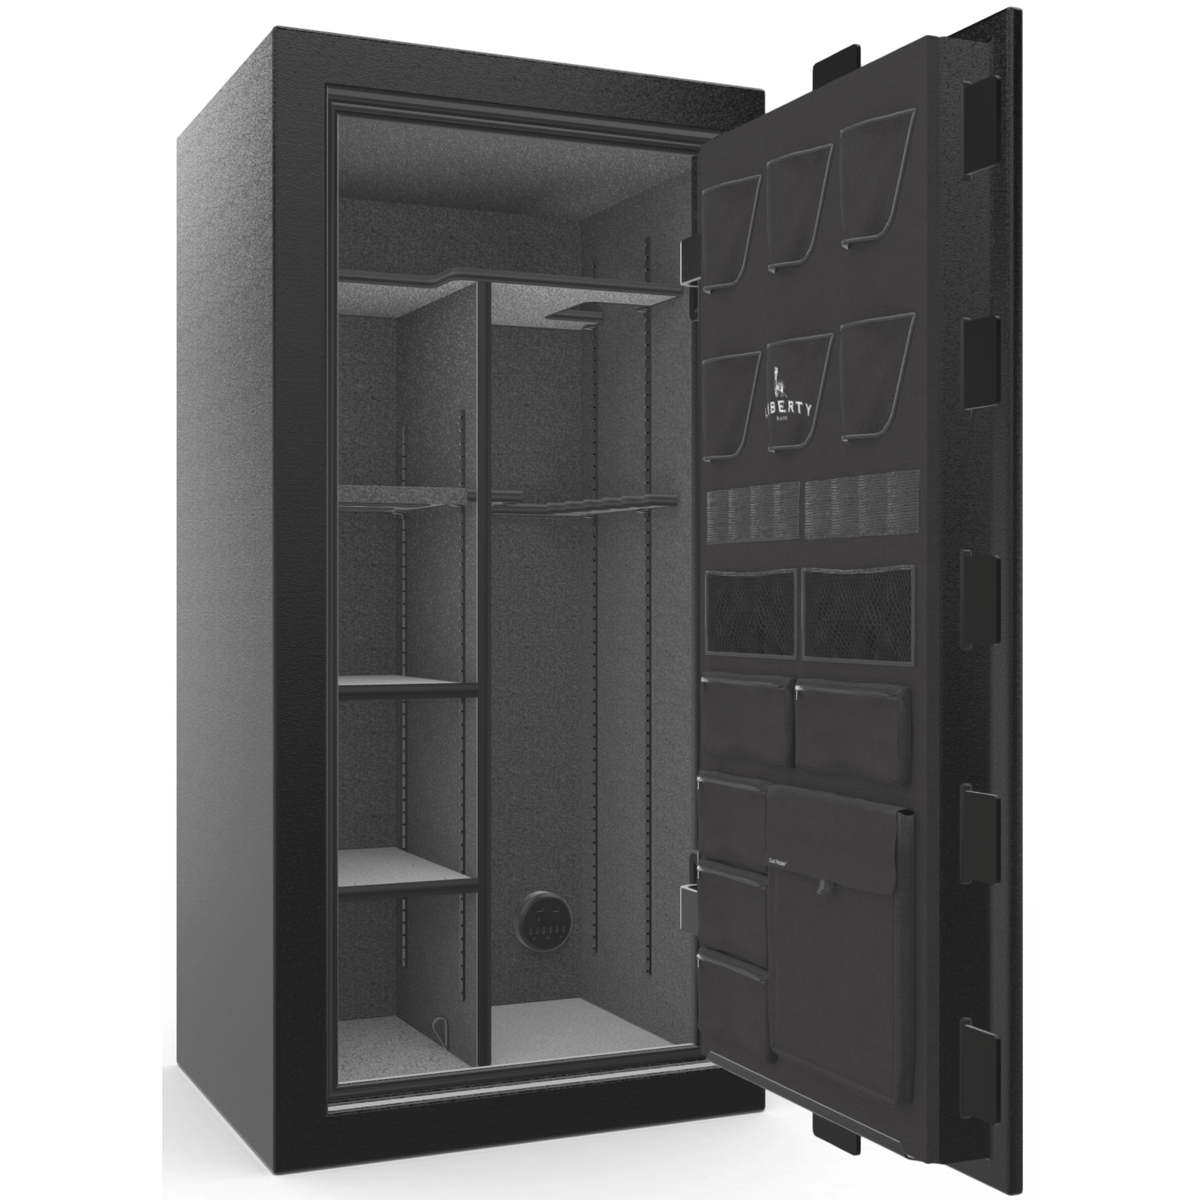 "Franklin | 25 | Level 4 Security | 75 Minute Fire Protection | Black | Chrome Electronic Lock | 60.5""(H) x 30""(W) x 28.5""(D)"